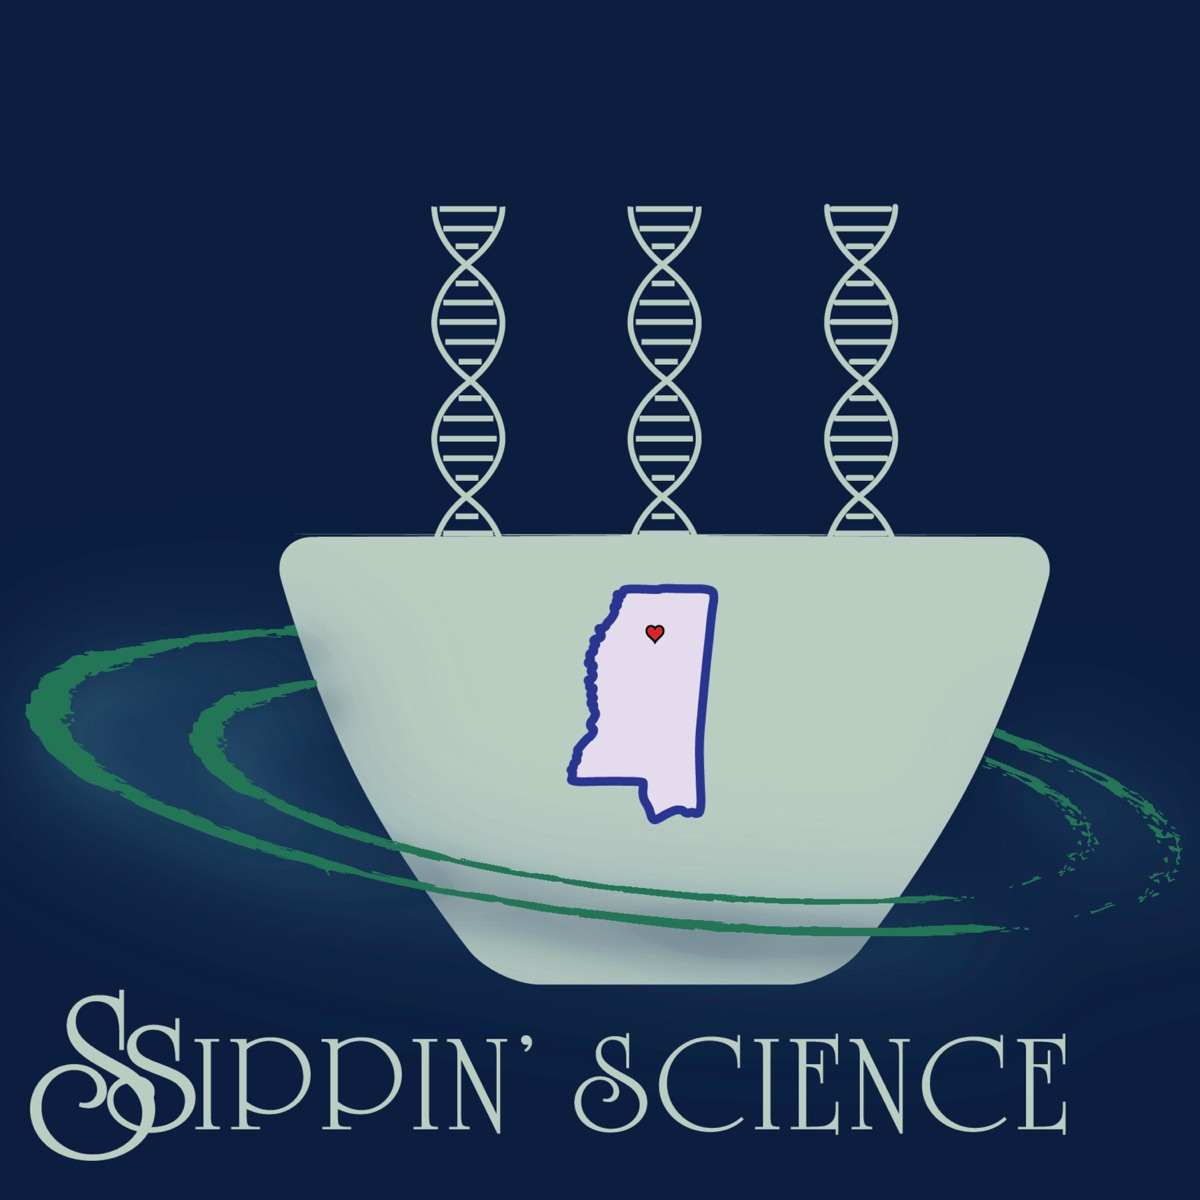 Ssippin' Science